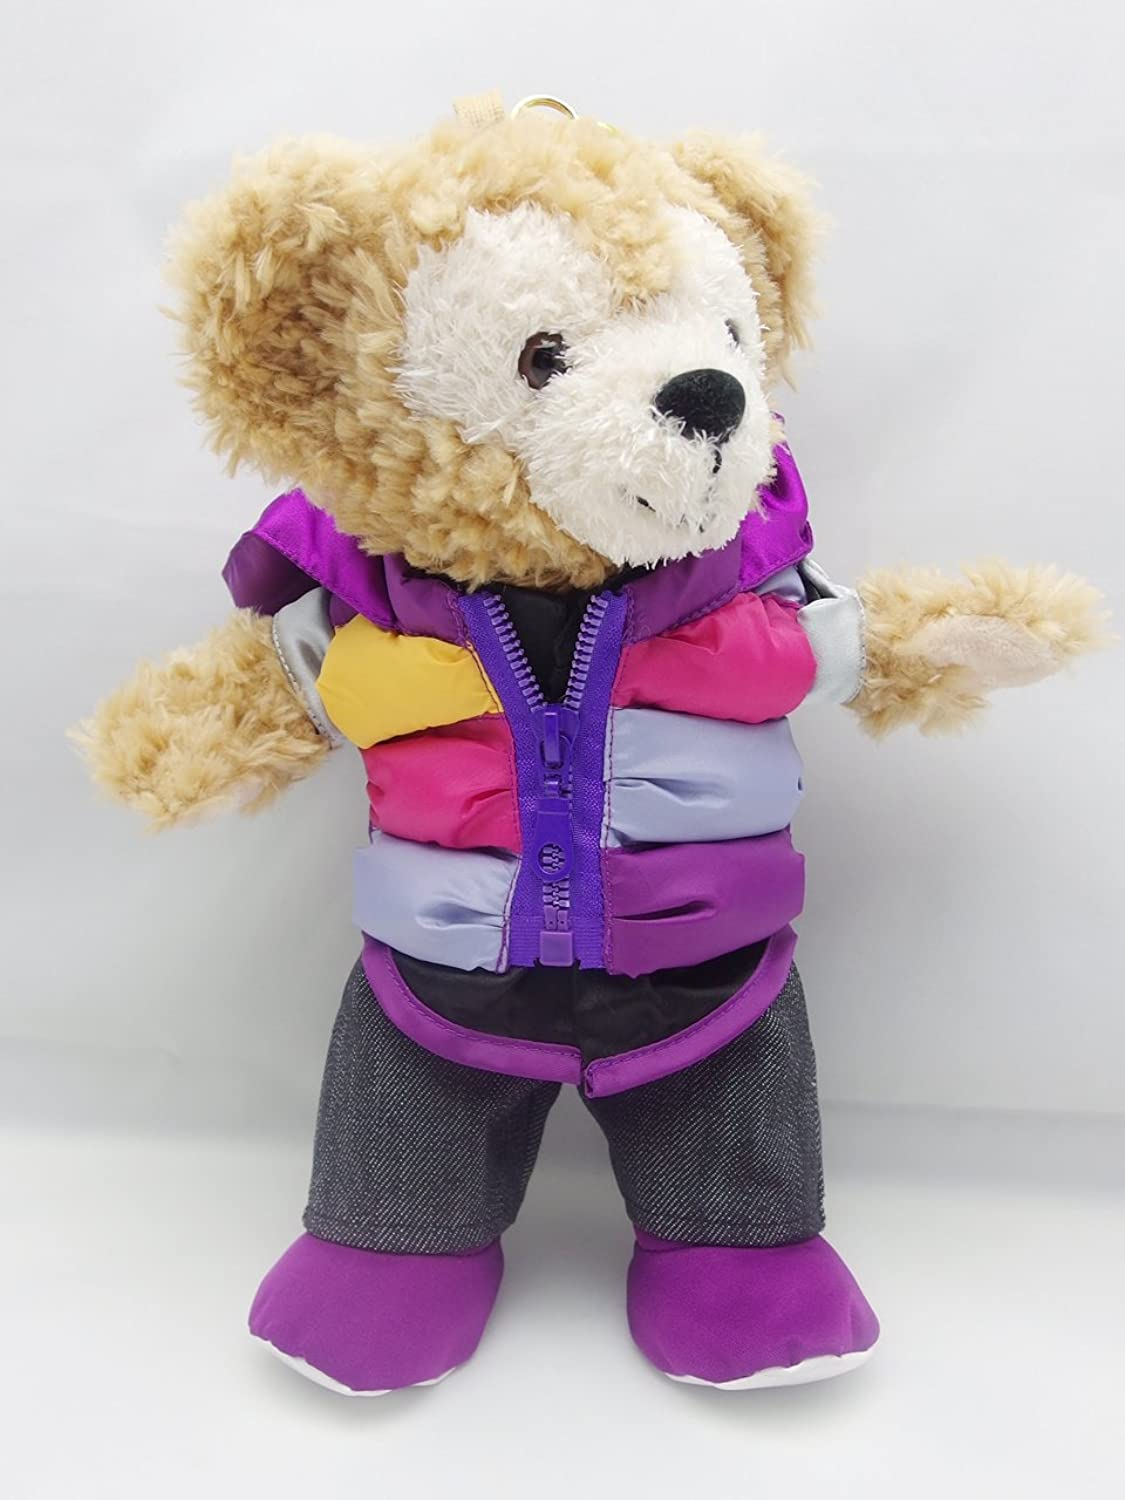 Dcute pouch Duffy costume stuffed Kos duffy clothes am91 (japan import)